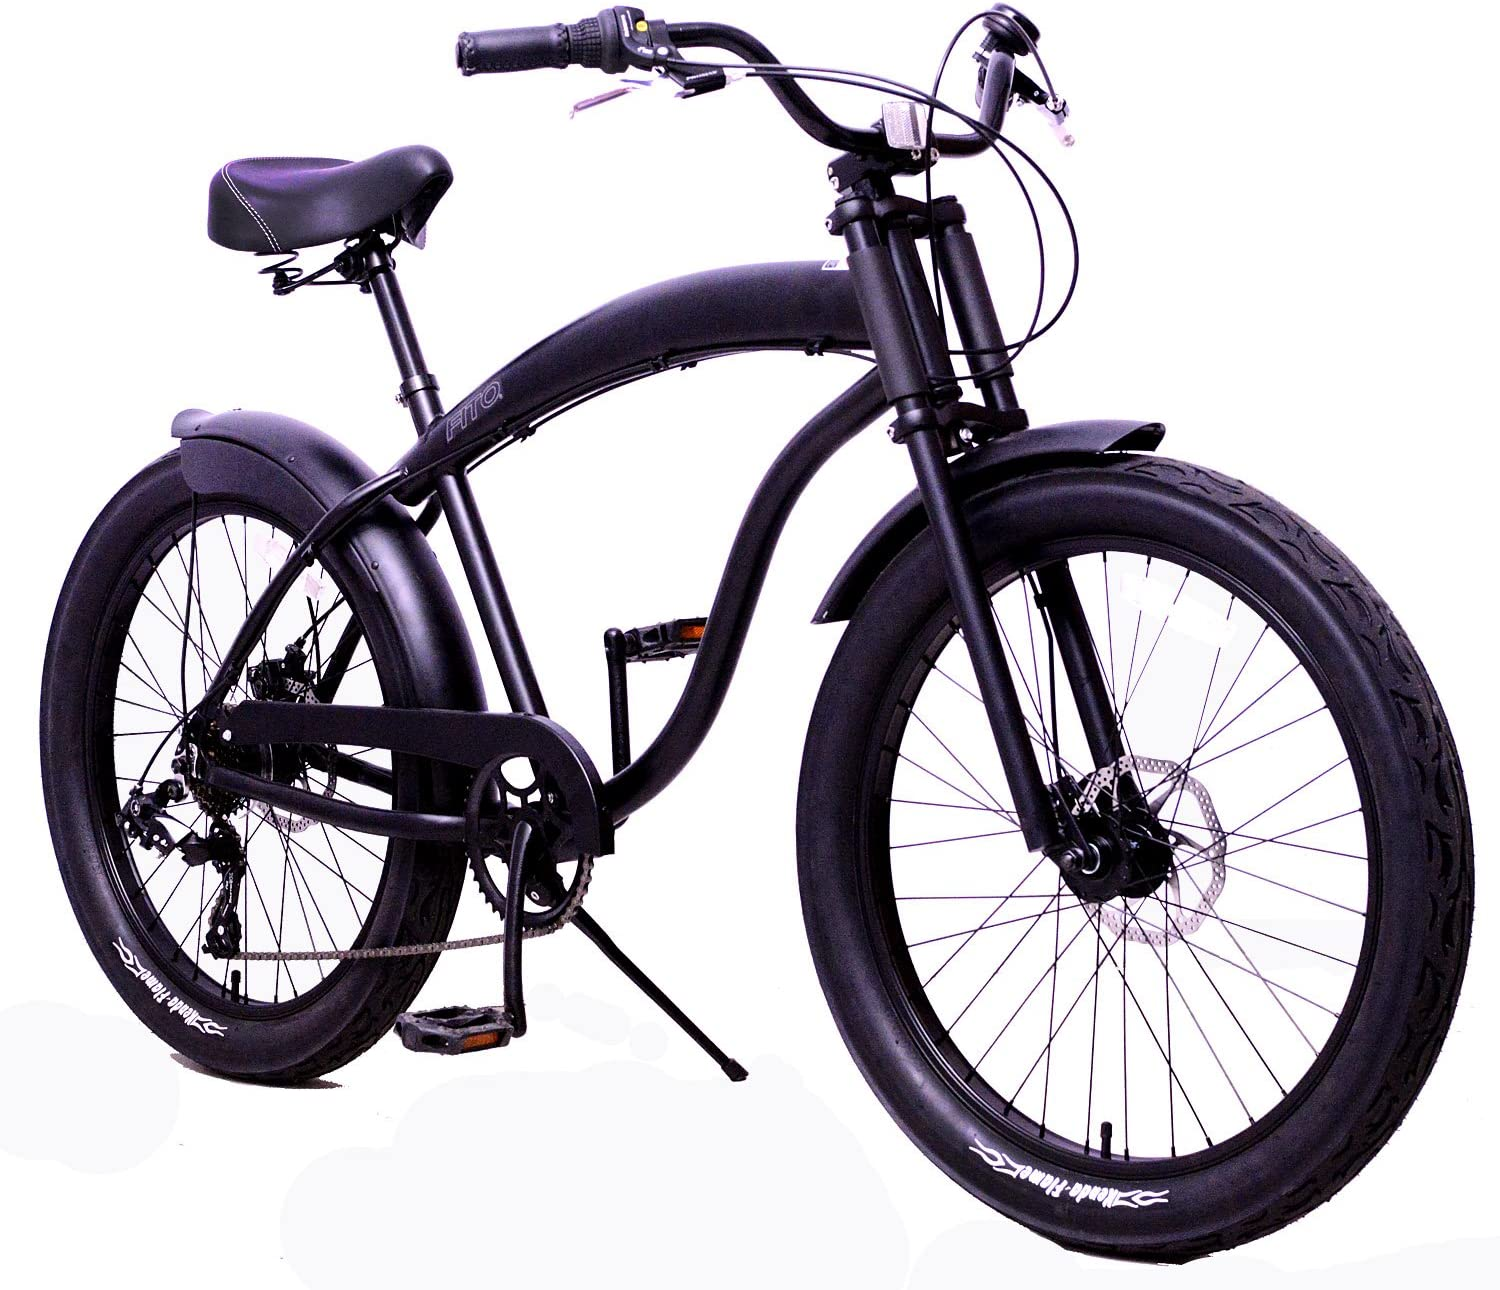 Fito Anti-Rust and Light Weight Aluminum Frame Modena GT-2 Alloy Shimano 7-Speed Shimano Disk Brakes 26 Mens Beach Cruiser Bike Bicycle Matte Black